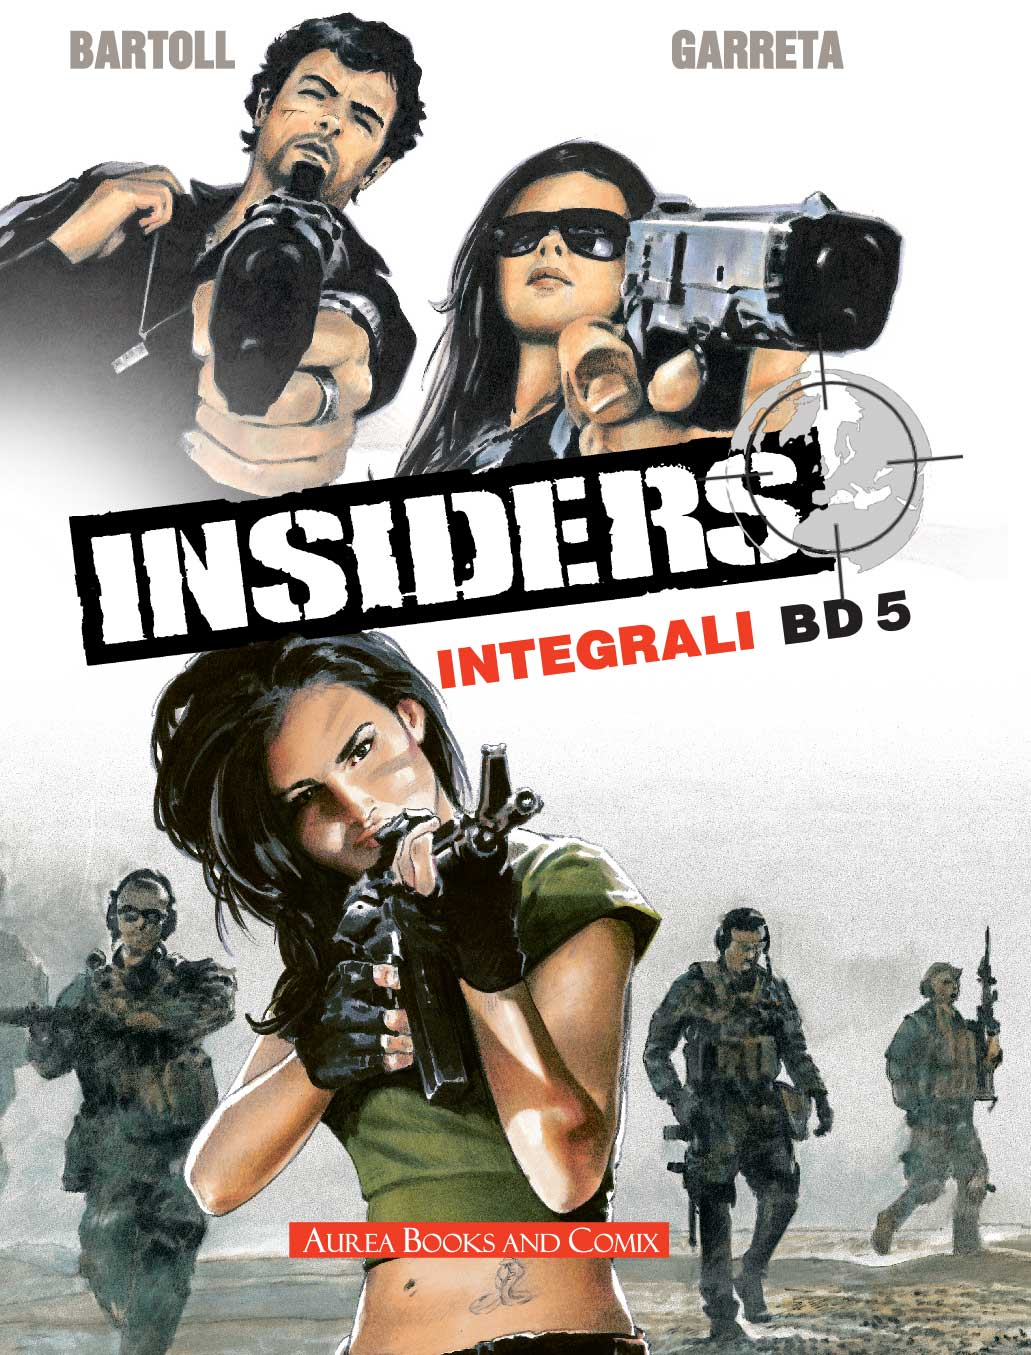 Integrali BD Insiders 5